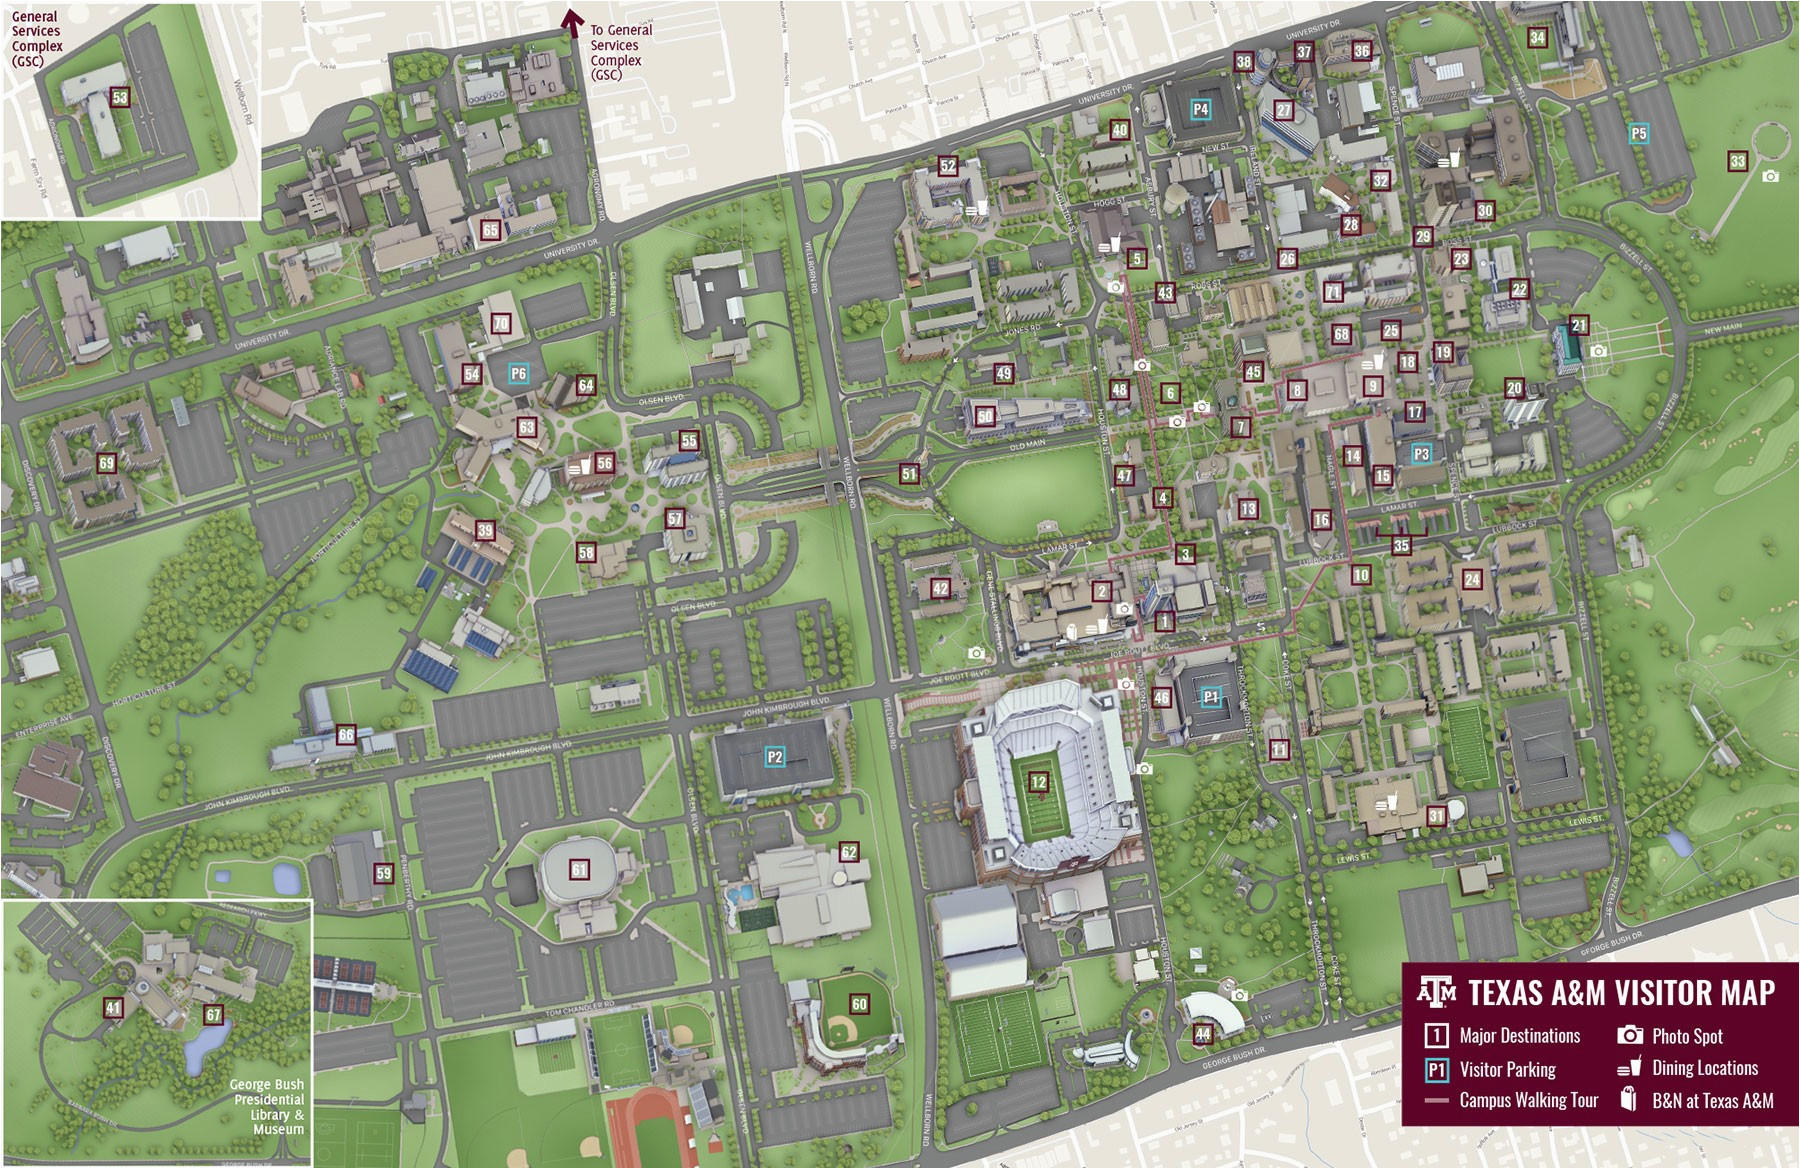 texas a and m campus map business ideas 2013